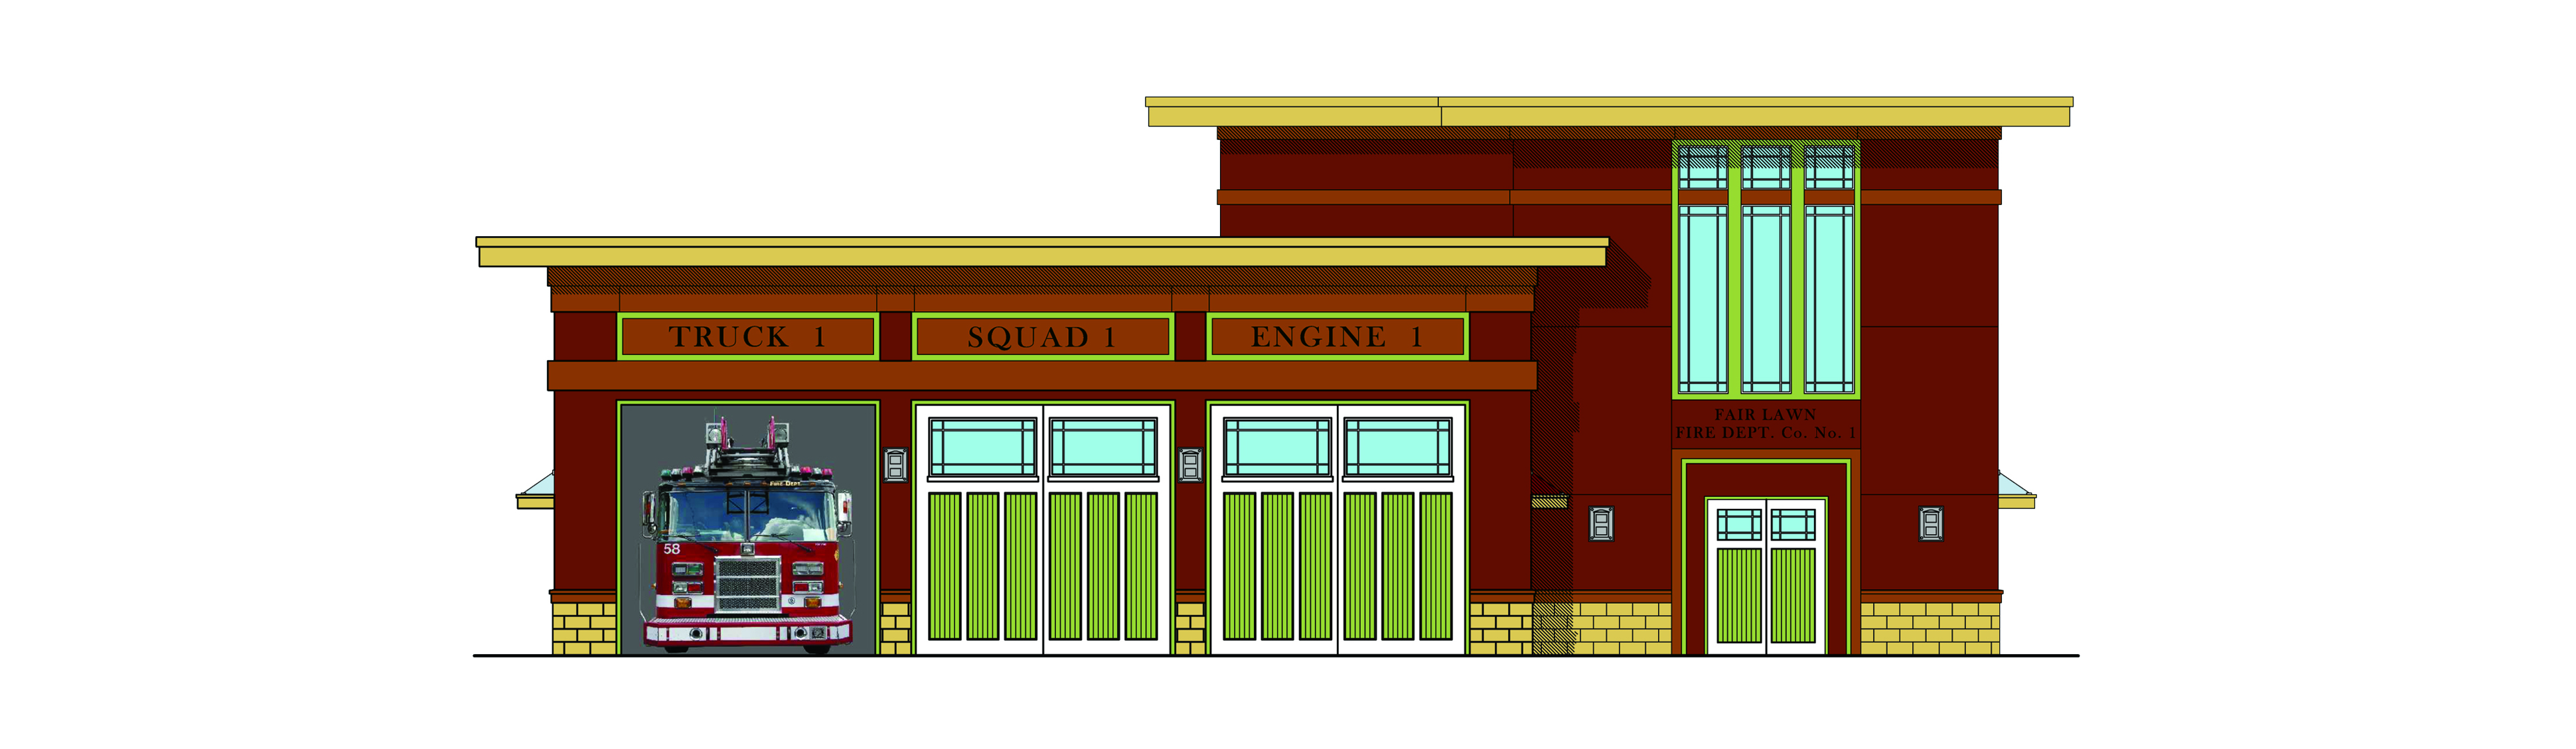 Small Fire Station Floor Plans Crowdbuild For